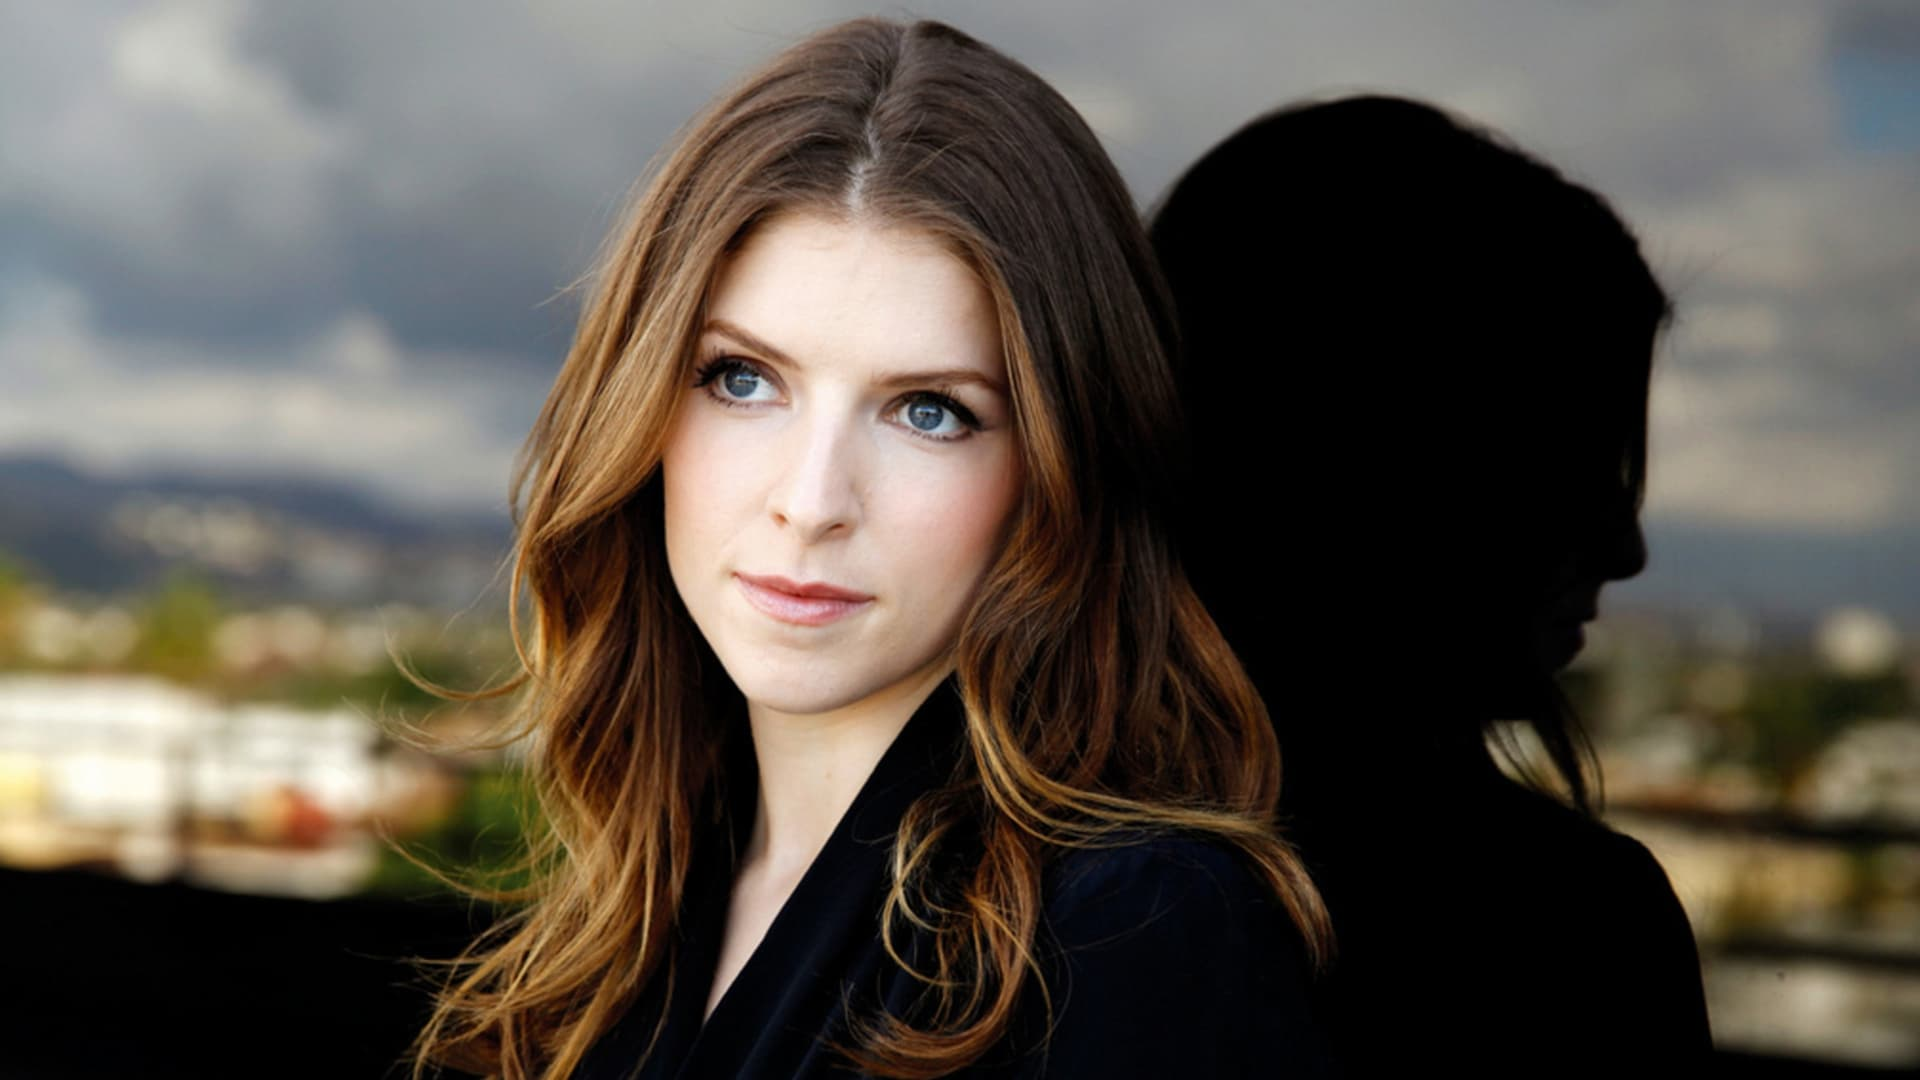 Anna Kendrick Backgrounds Pictures Images